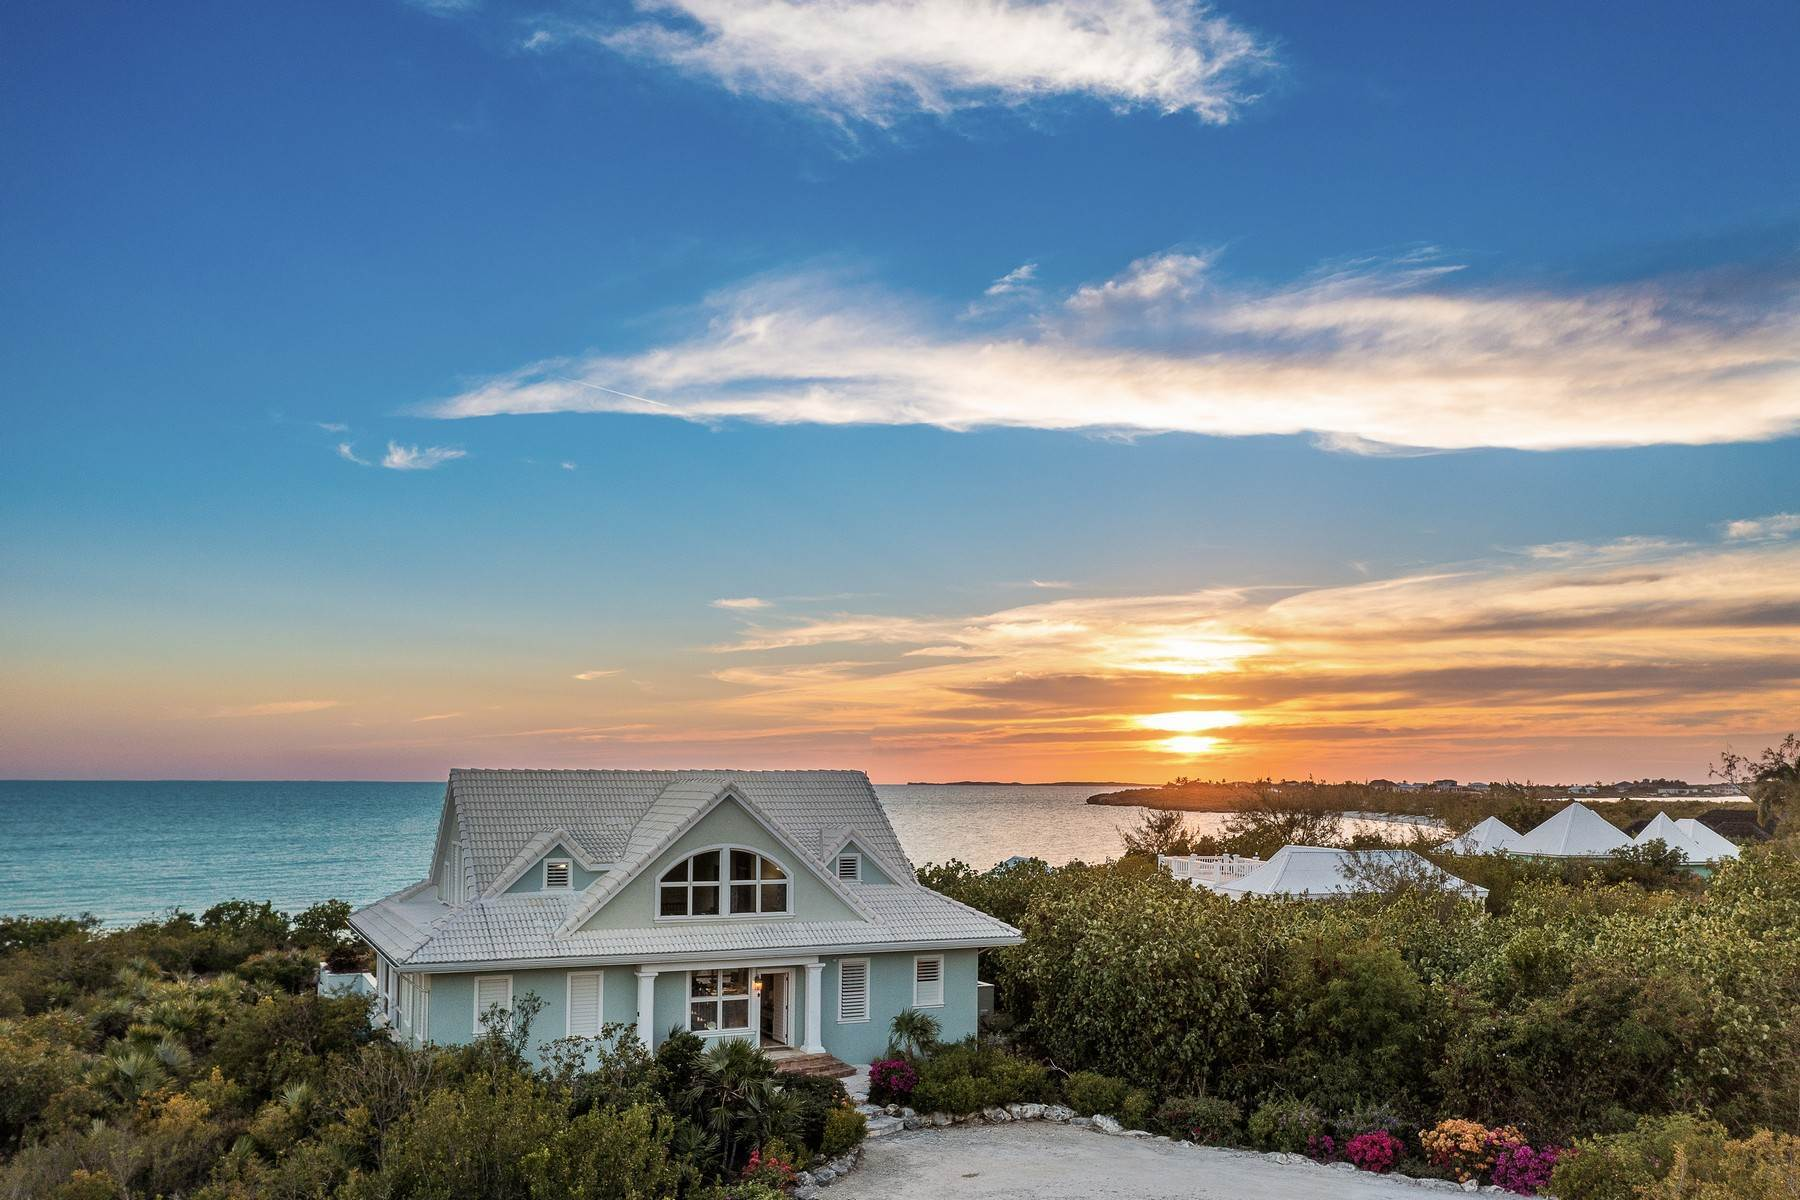 Single Family Homes for Sale at Villa Bahia Mar Chalk Sound, Providenciales Turks And Caicos Islands